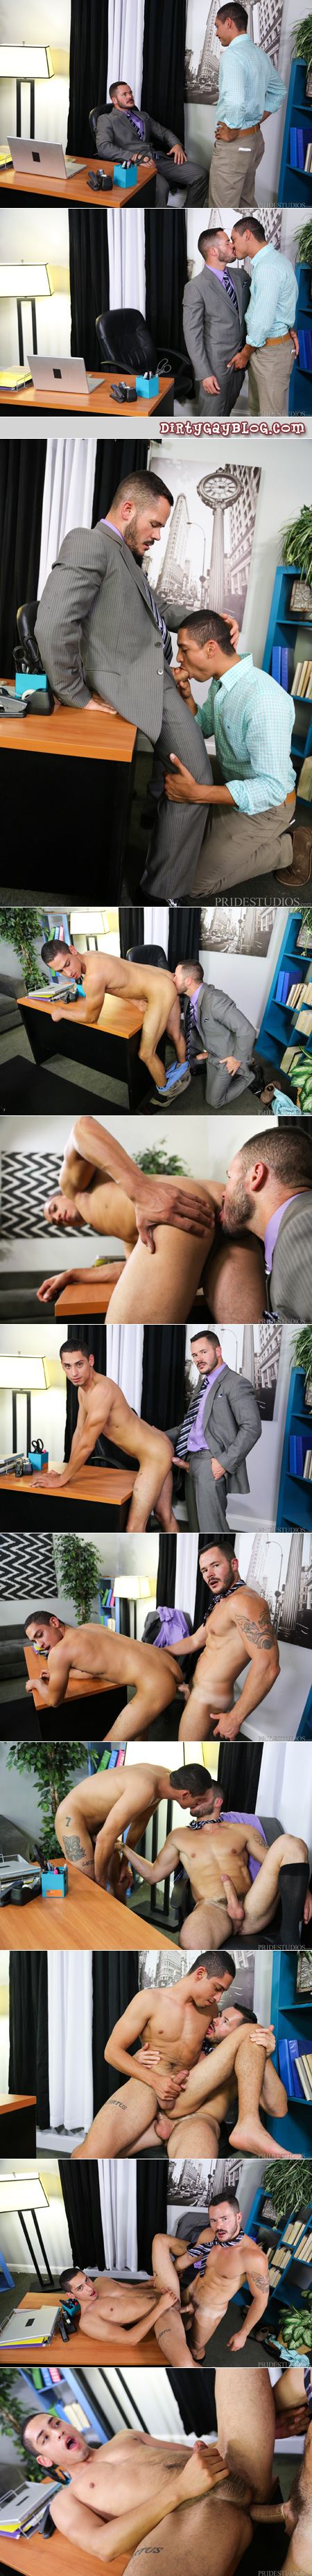 Hung businessman fucking a young office worker with his enormous cock after closing a big deal.